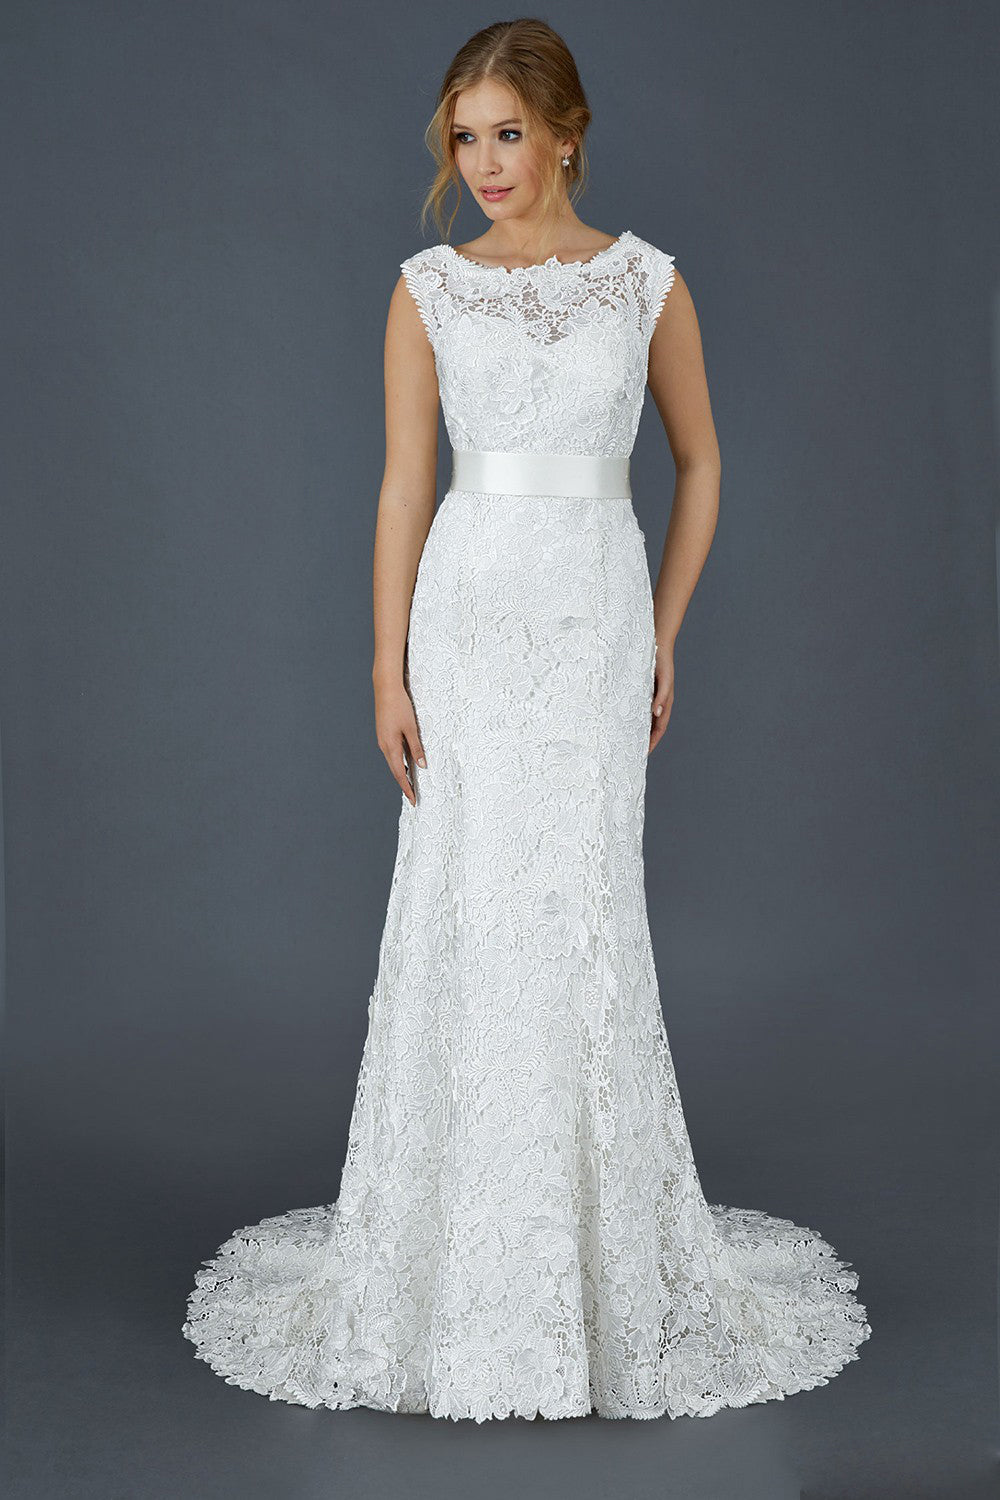 Lace Bateau Neckline Wedding Dresses with Satin Belt